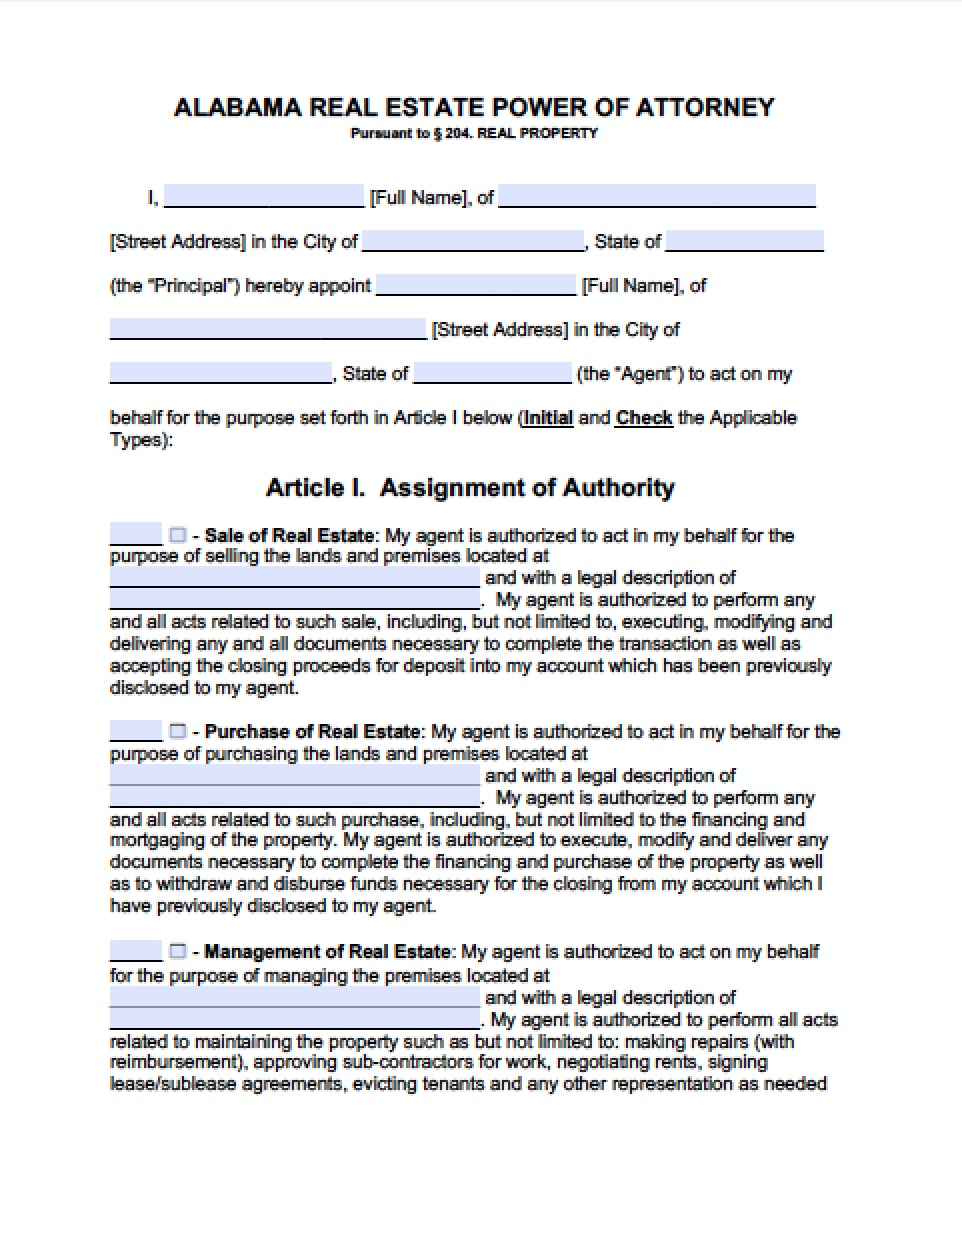 Vermont Power Of Attorney Form For Real Estate